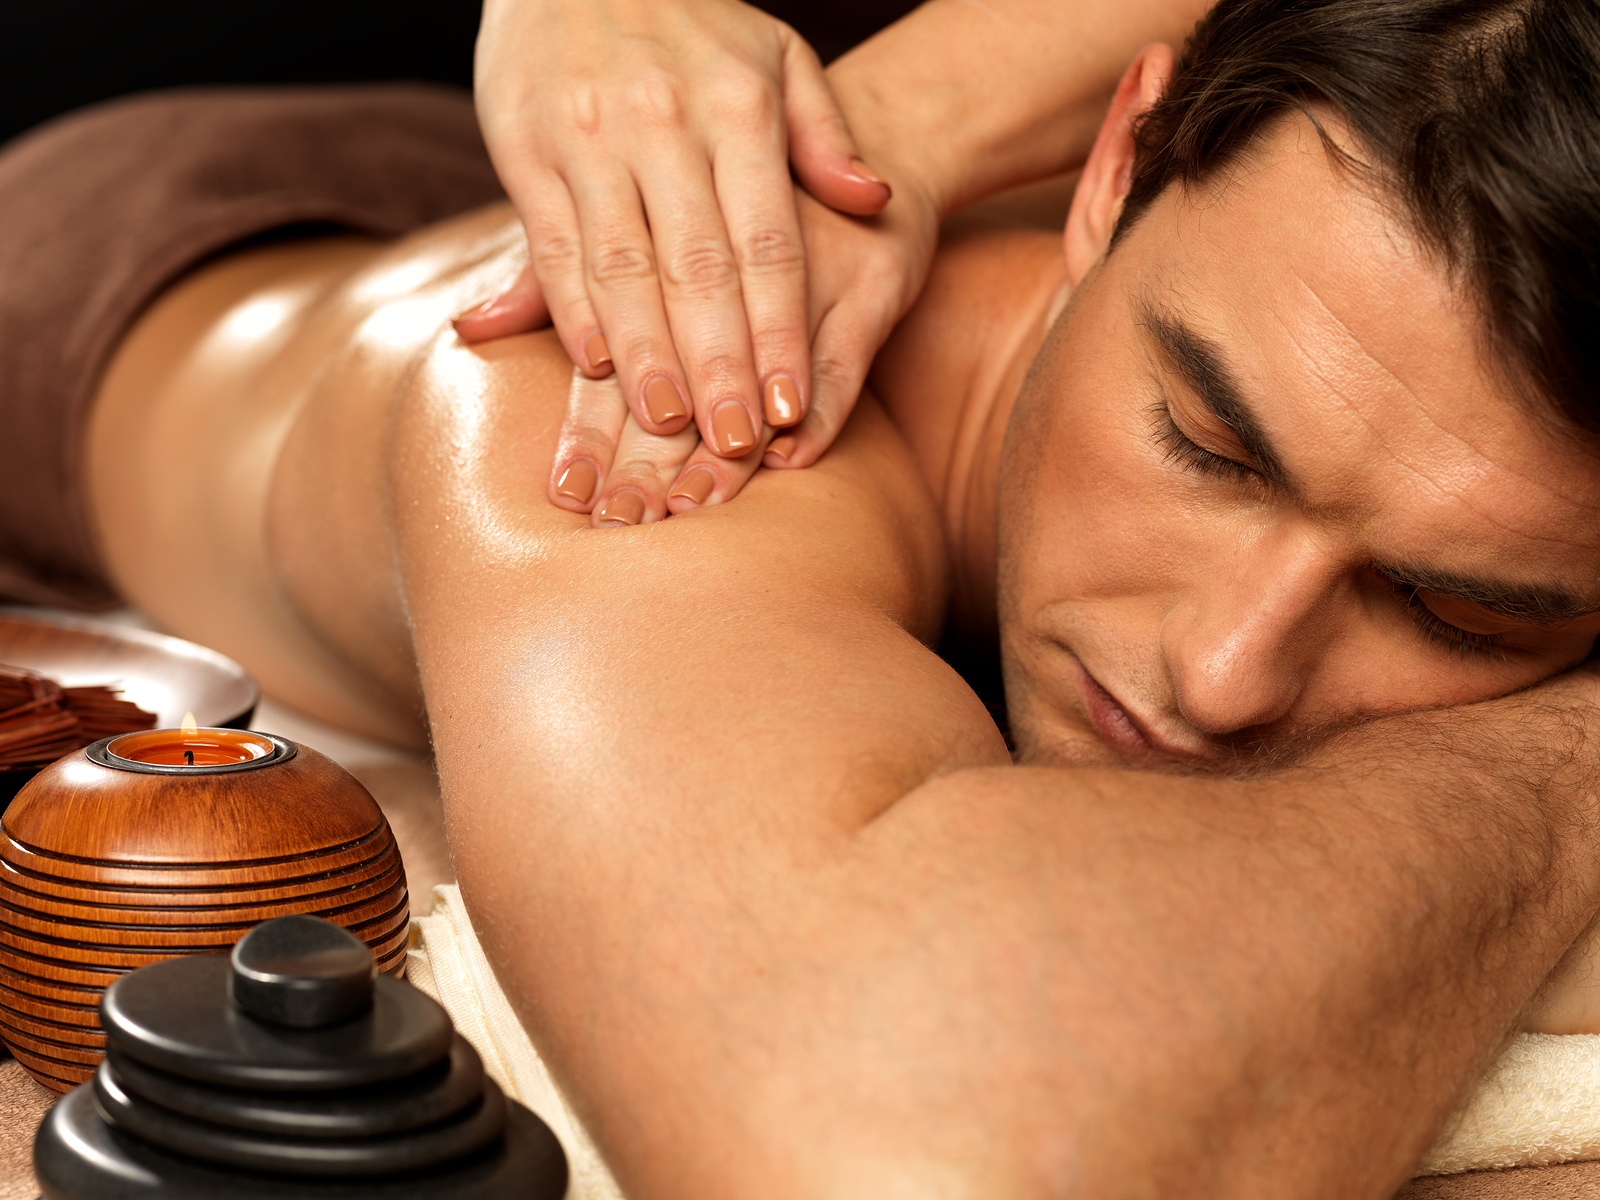 stock-photo-masseur-doing-back-massage-on-man-body-in-the-spa-salon-beauty-treatment-concept-128560223.jpg